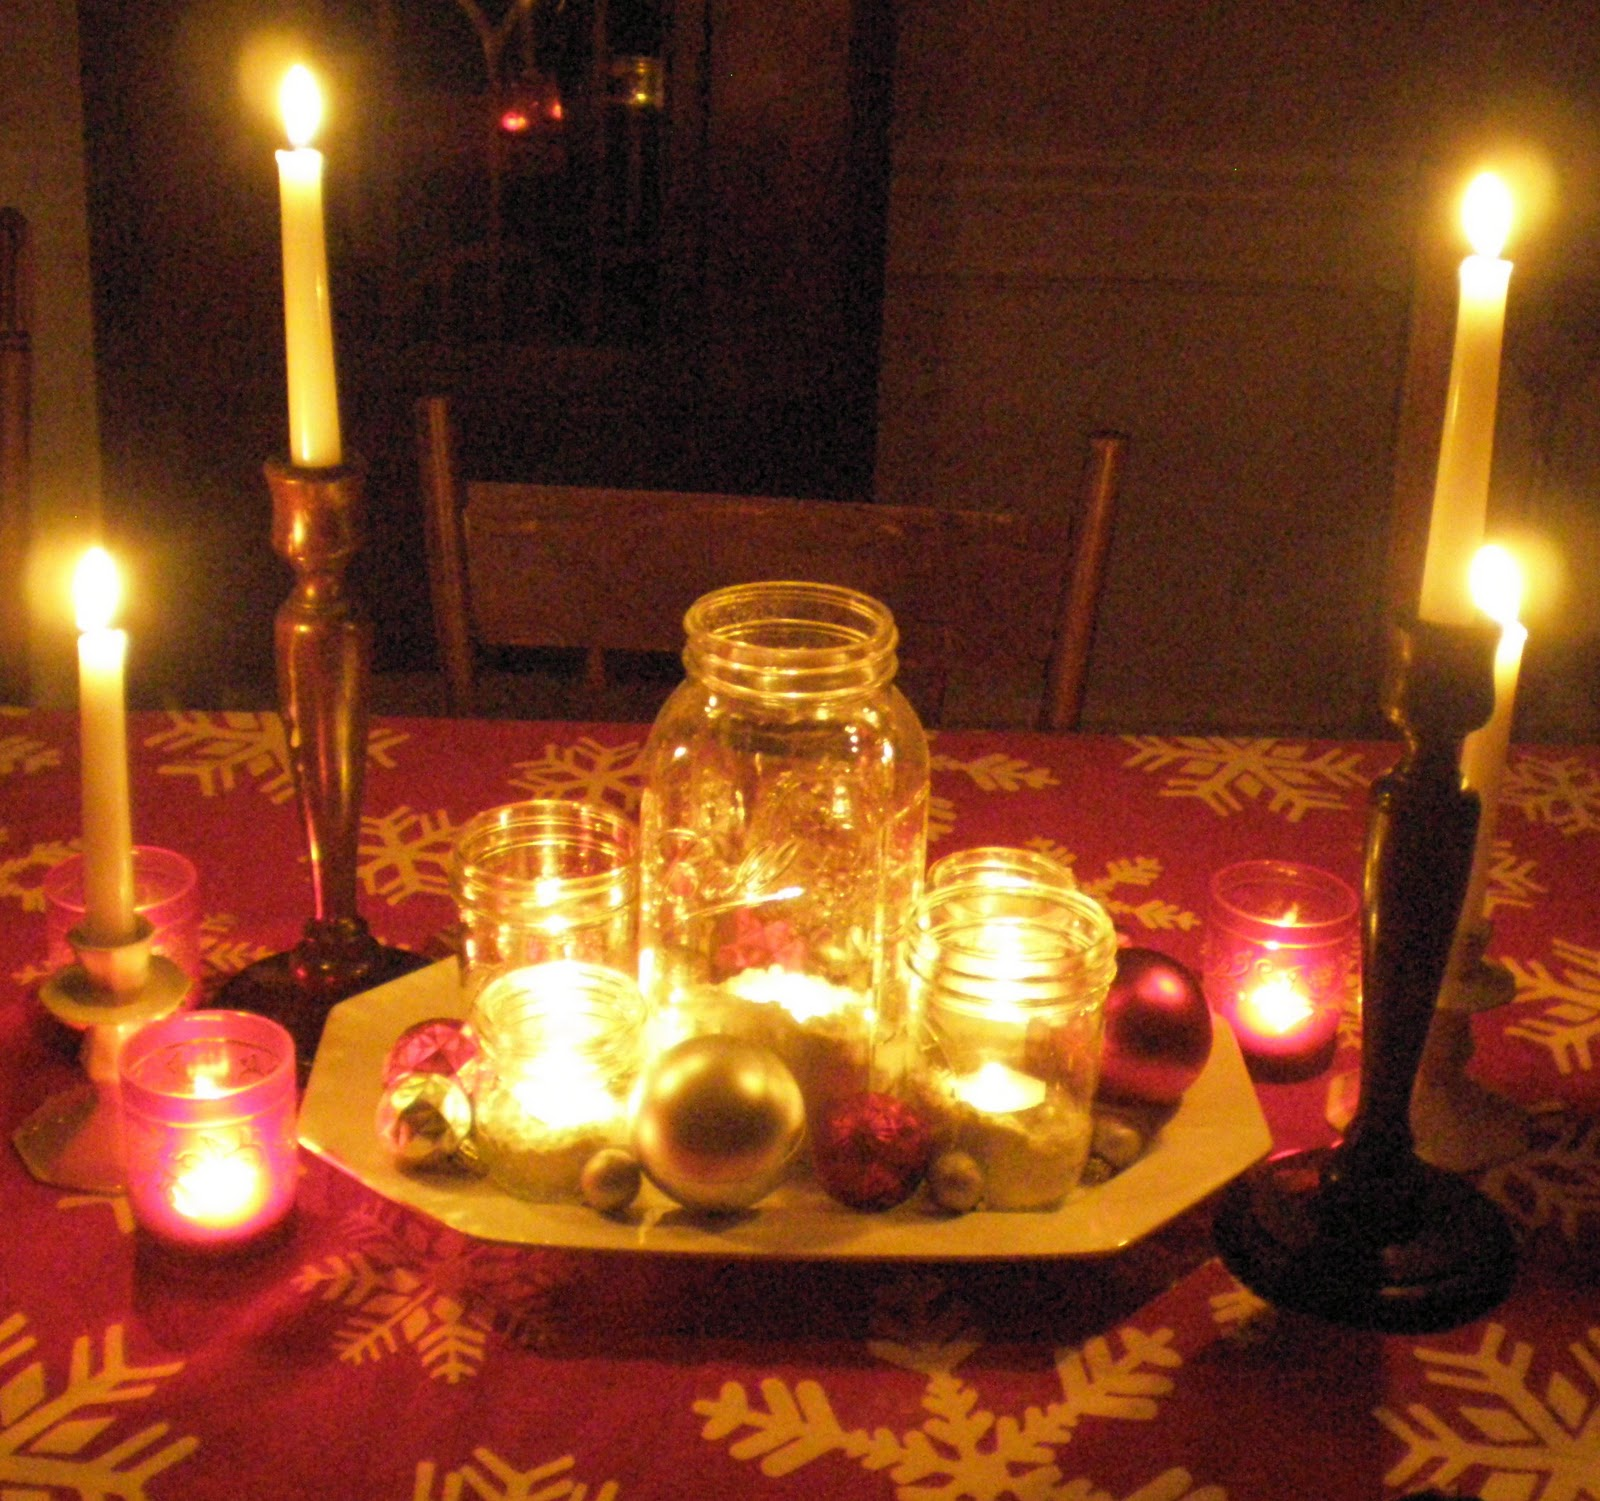 Candle light dinner table for two - Candlelight Dinner